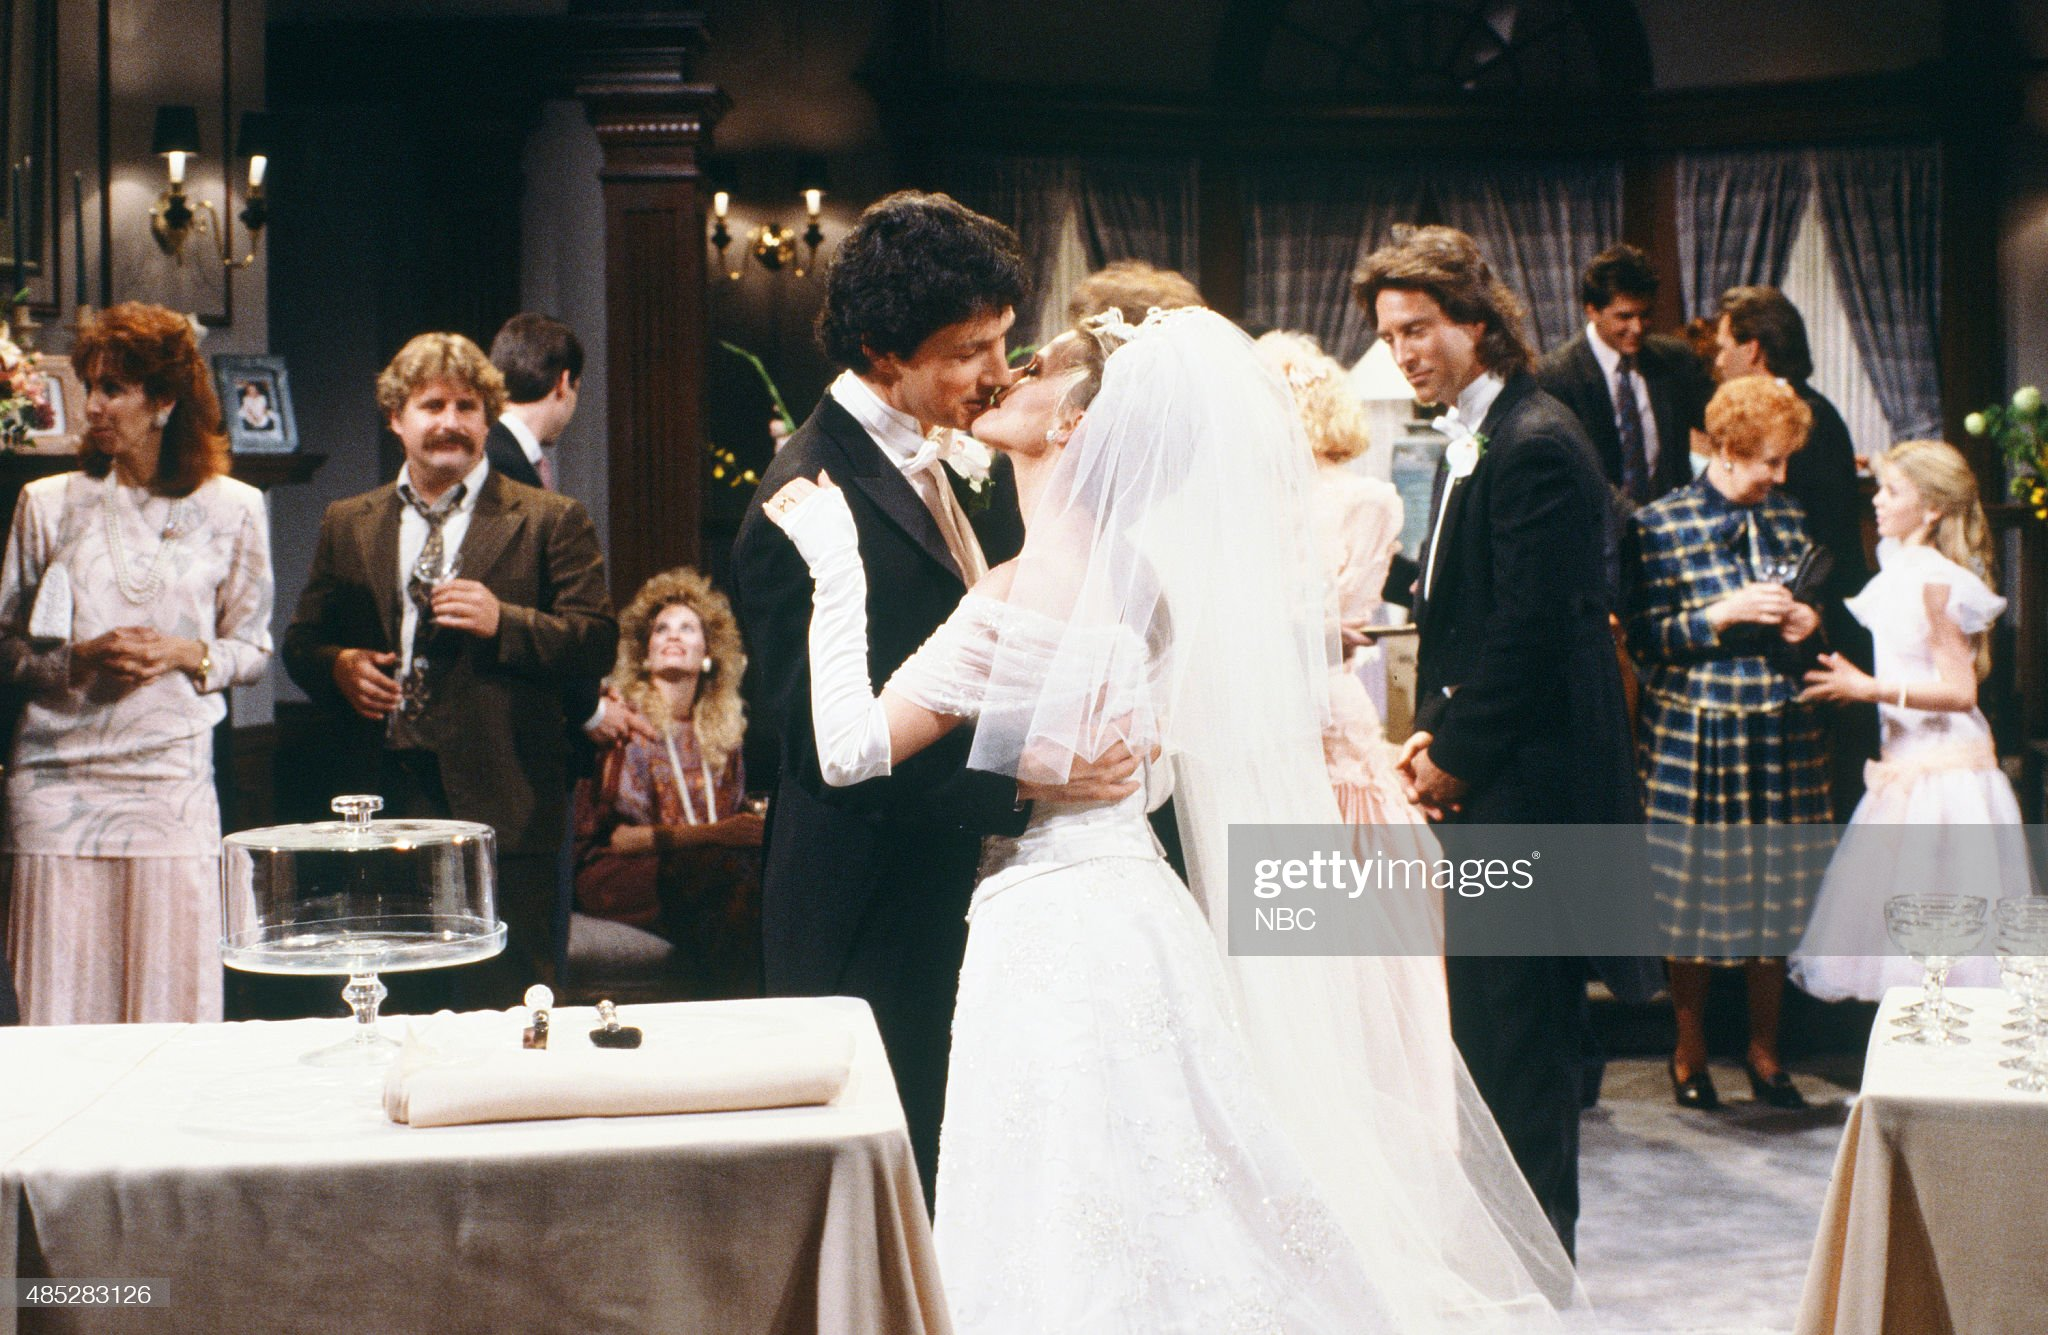 kimberly-brady-shane-donovan-wedding-pictured-charles-shaughnessy-as-picture-id485283126